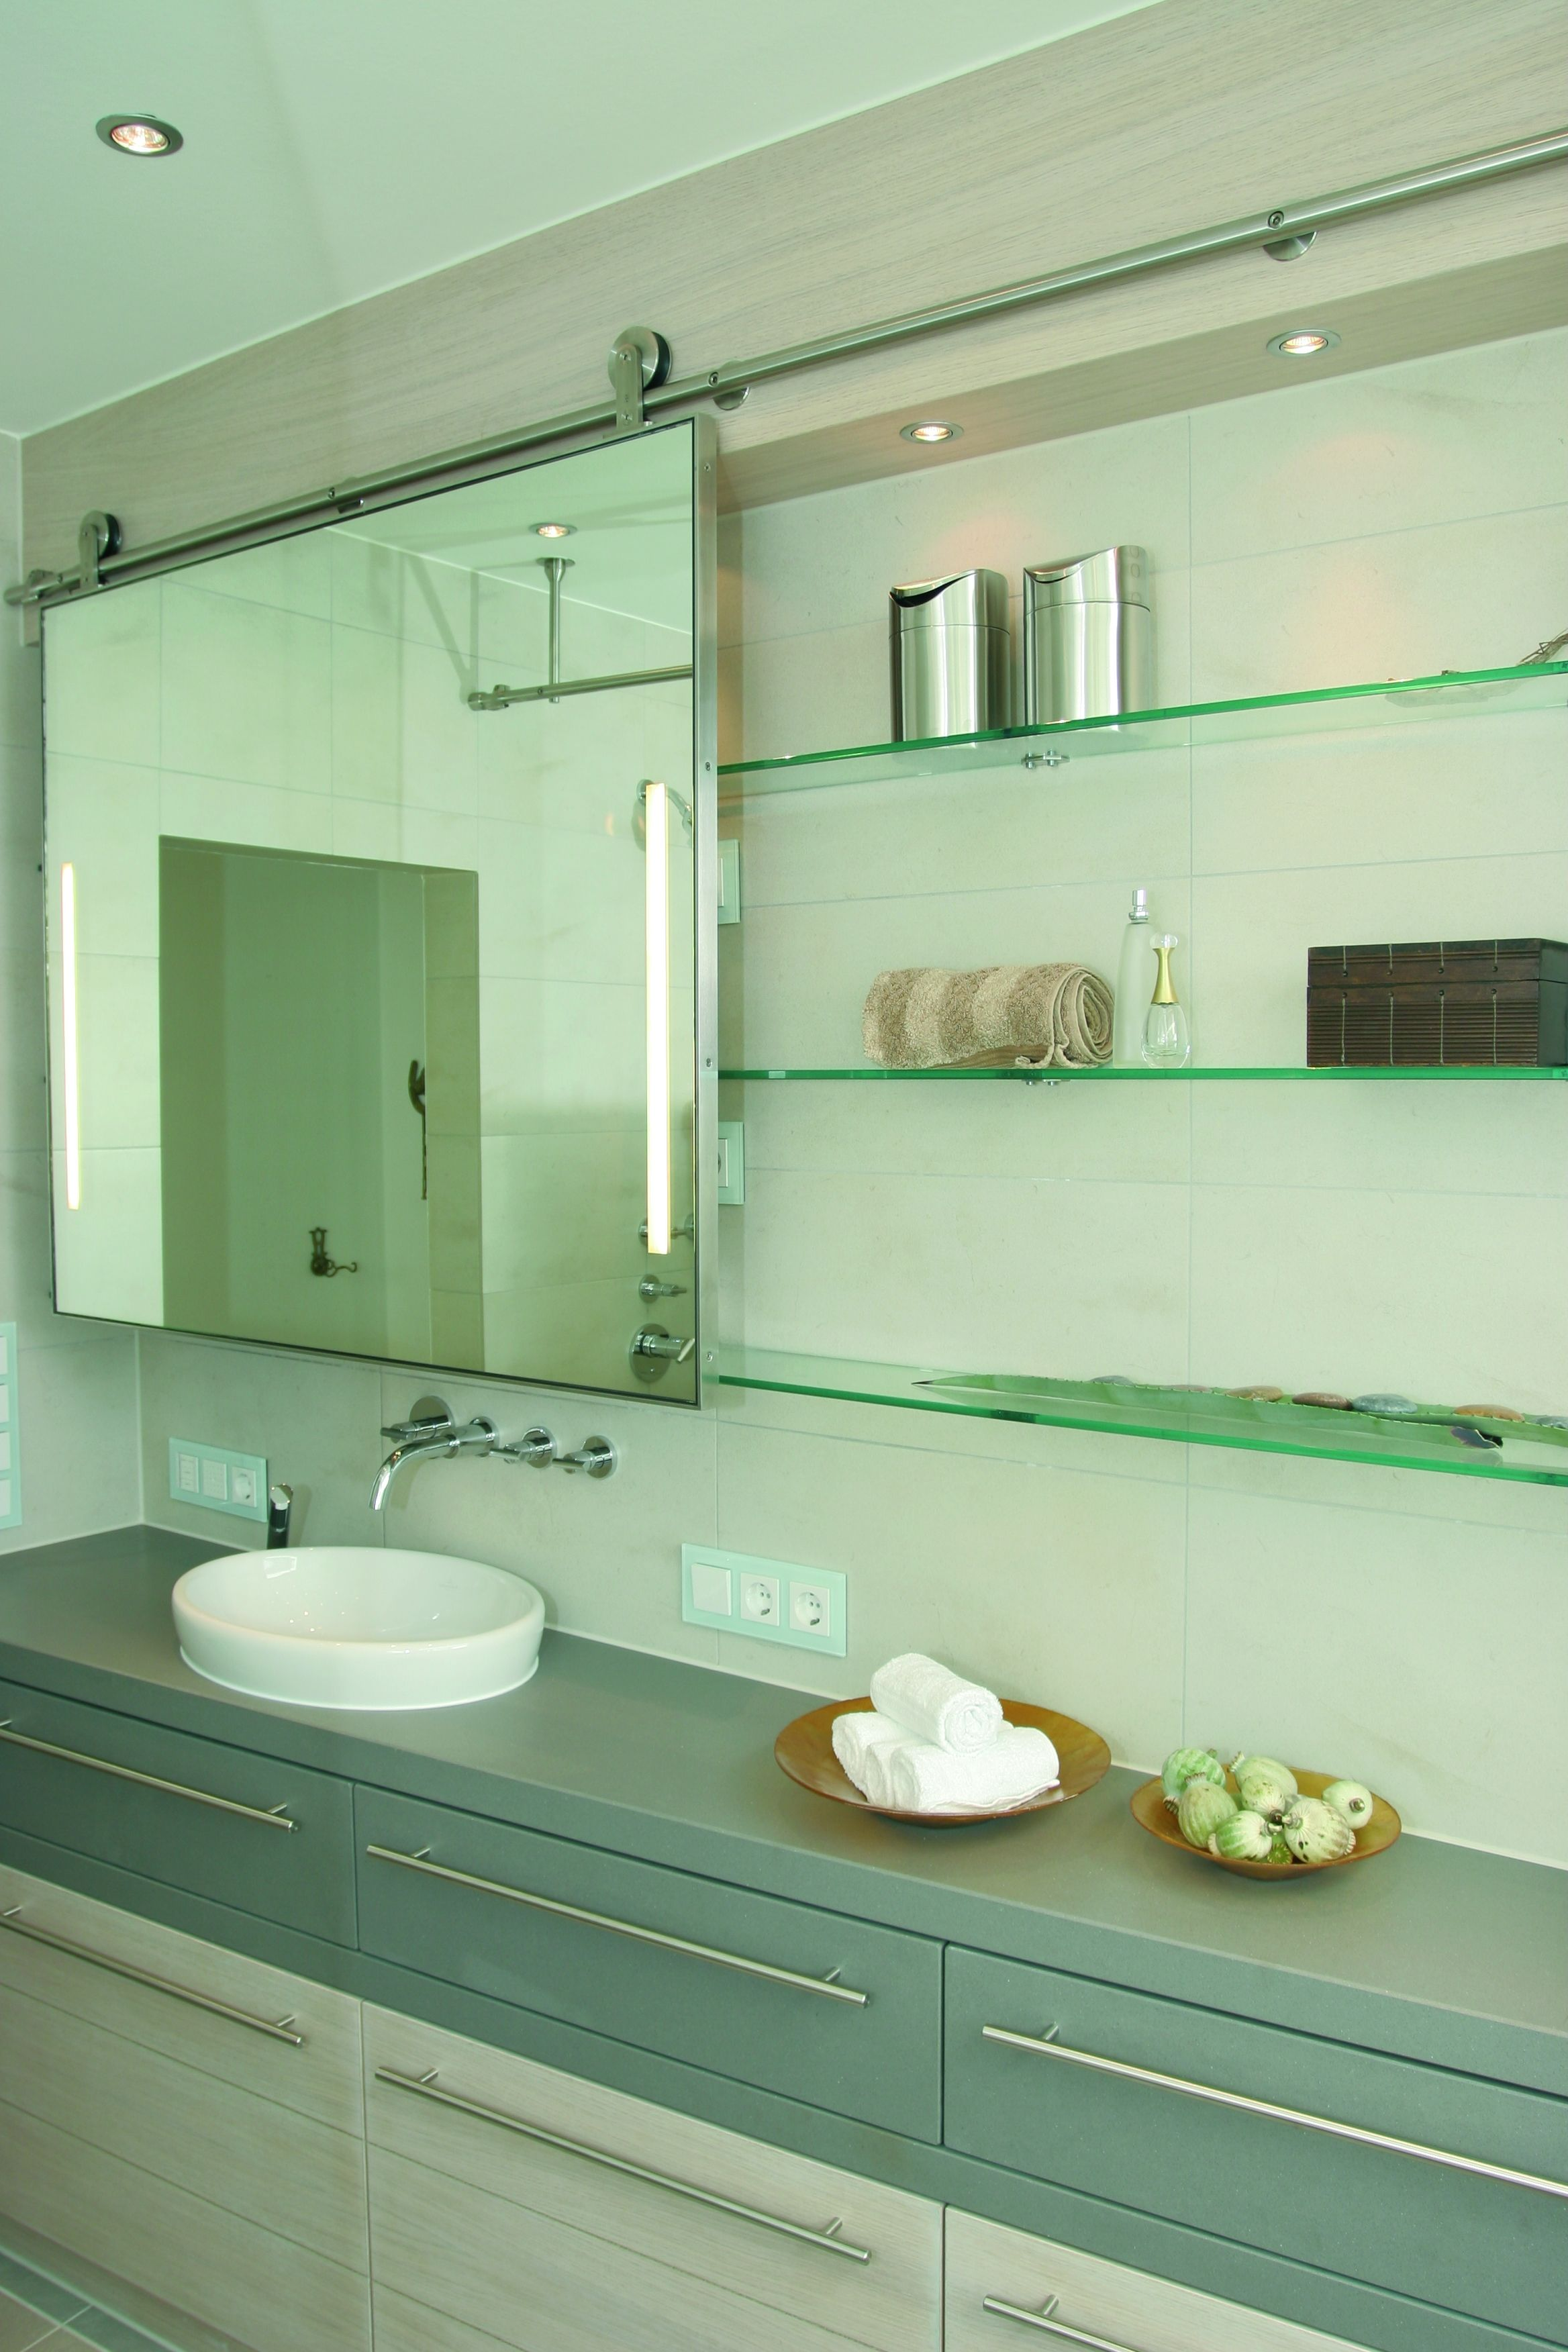 Pin de Richard Cone em Master bathroom layout | Espelhos ...